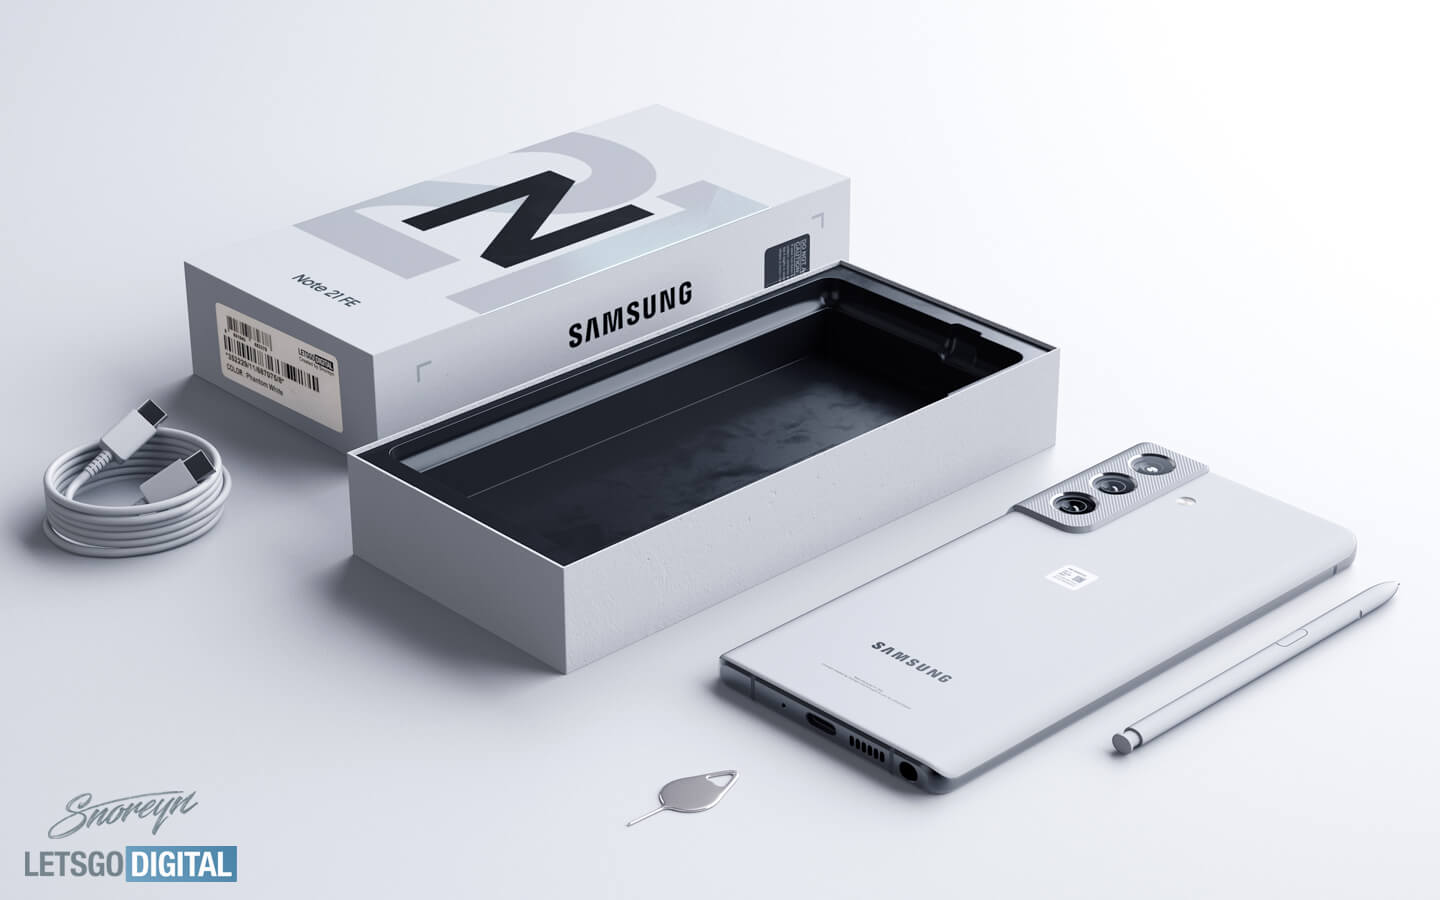 Samsung Note 21 Fan Edition